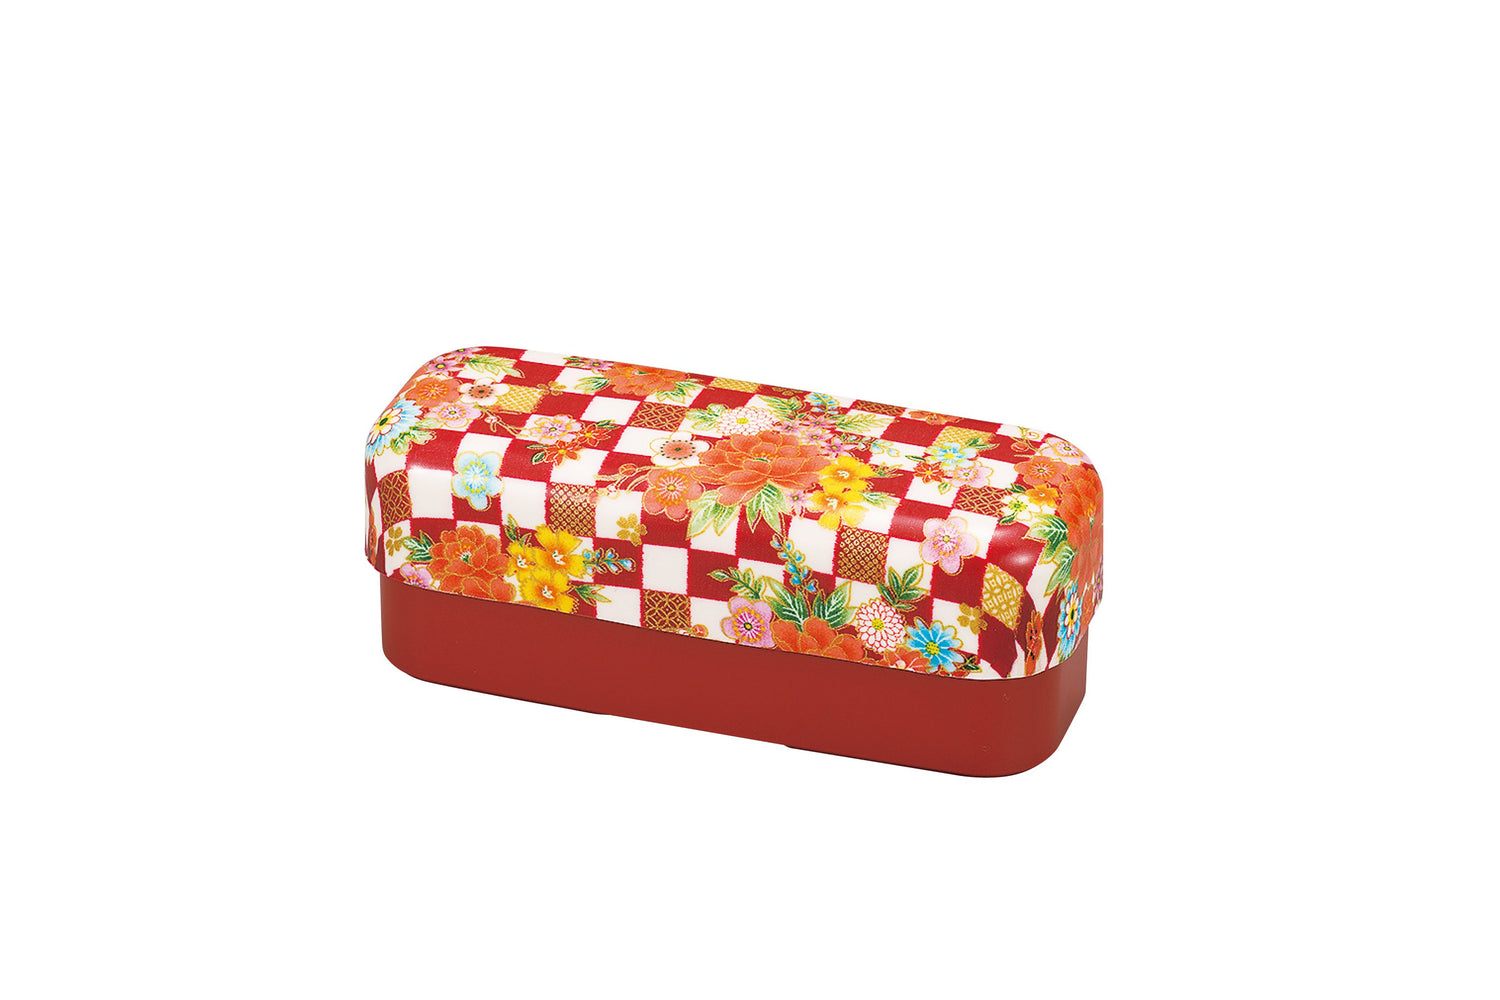 Ichimatsu Flower Bento Box Slim Red by Hakoya - Bento&co Japanese Bento Lunch Boxes and Kitchenware Specialists